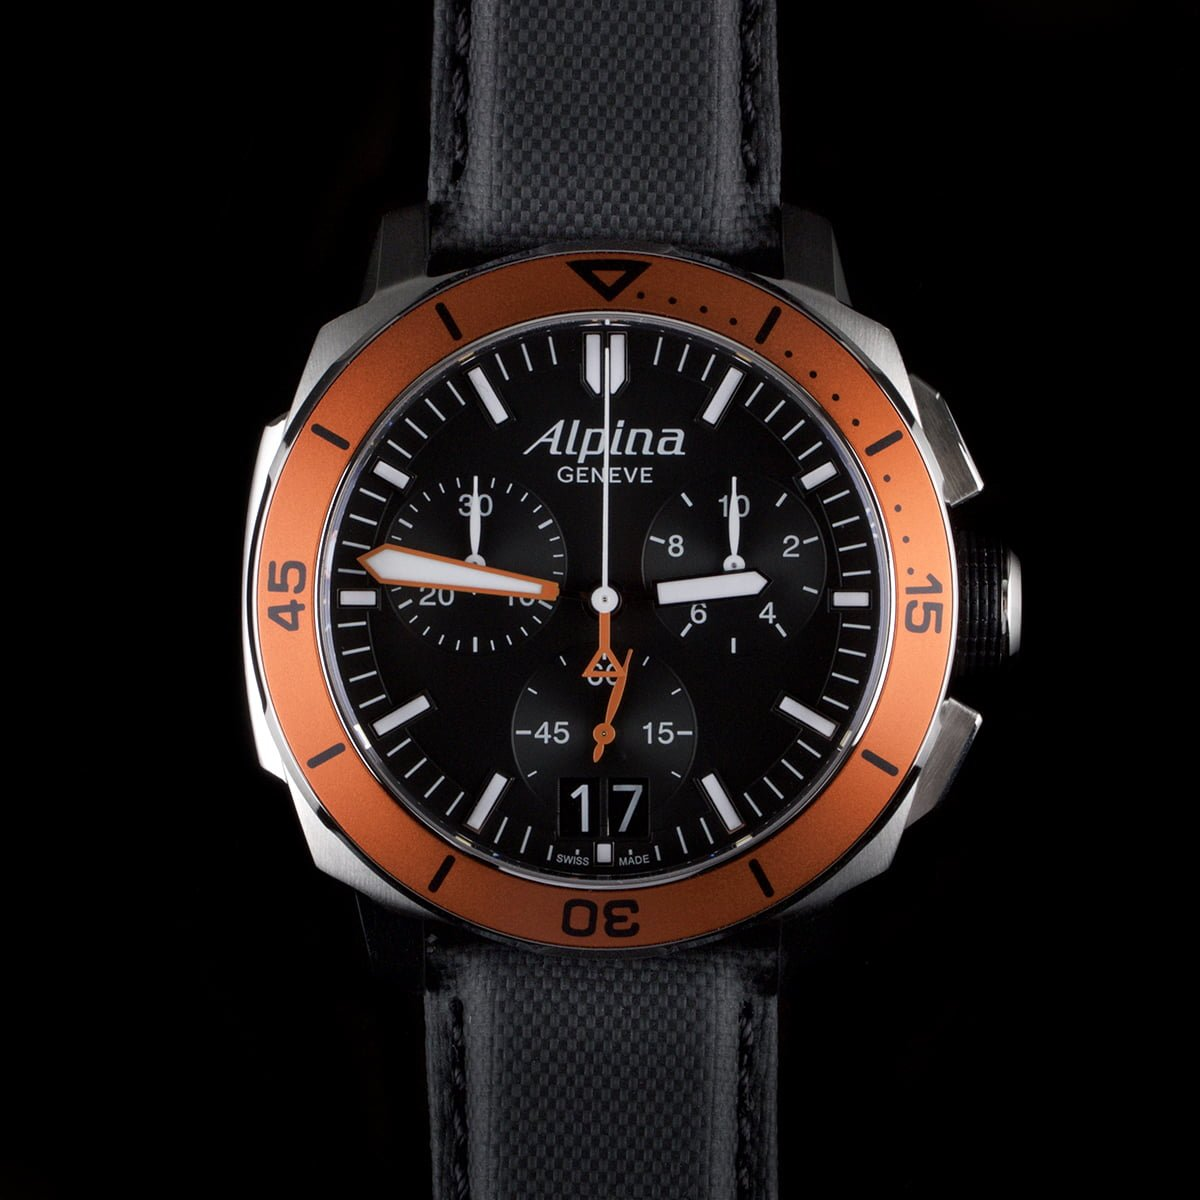 Photo of Alpina Seastrong Diver 300 Chronograph with orange bezel